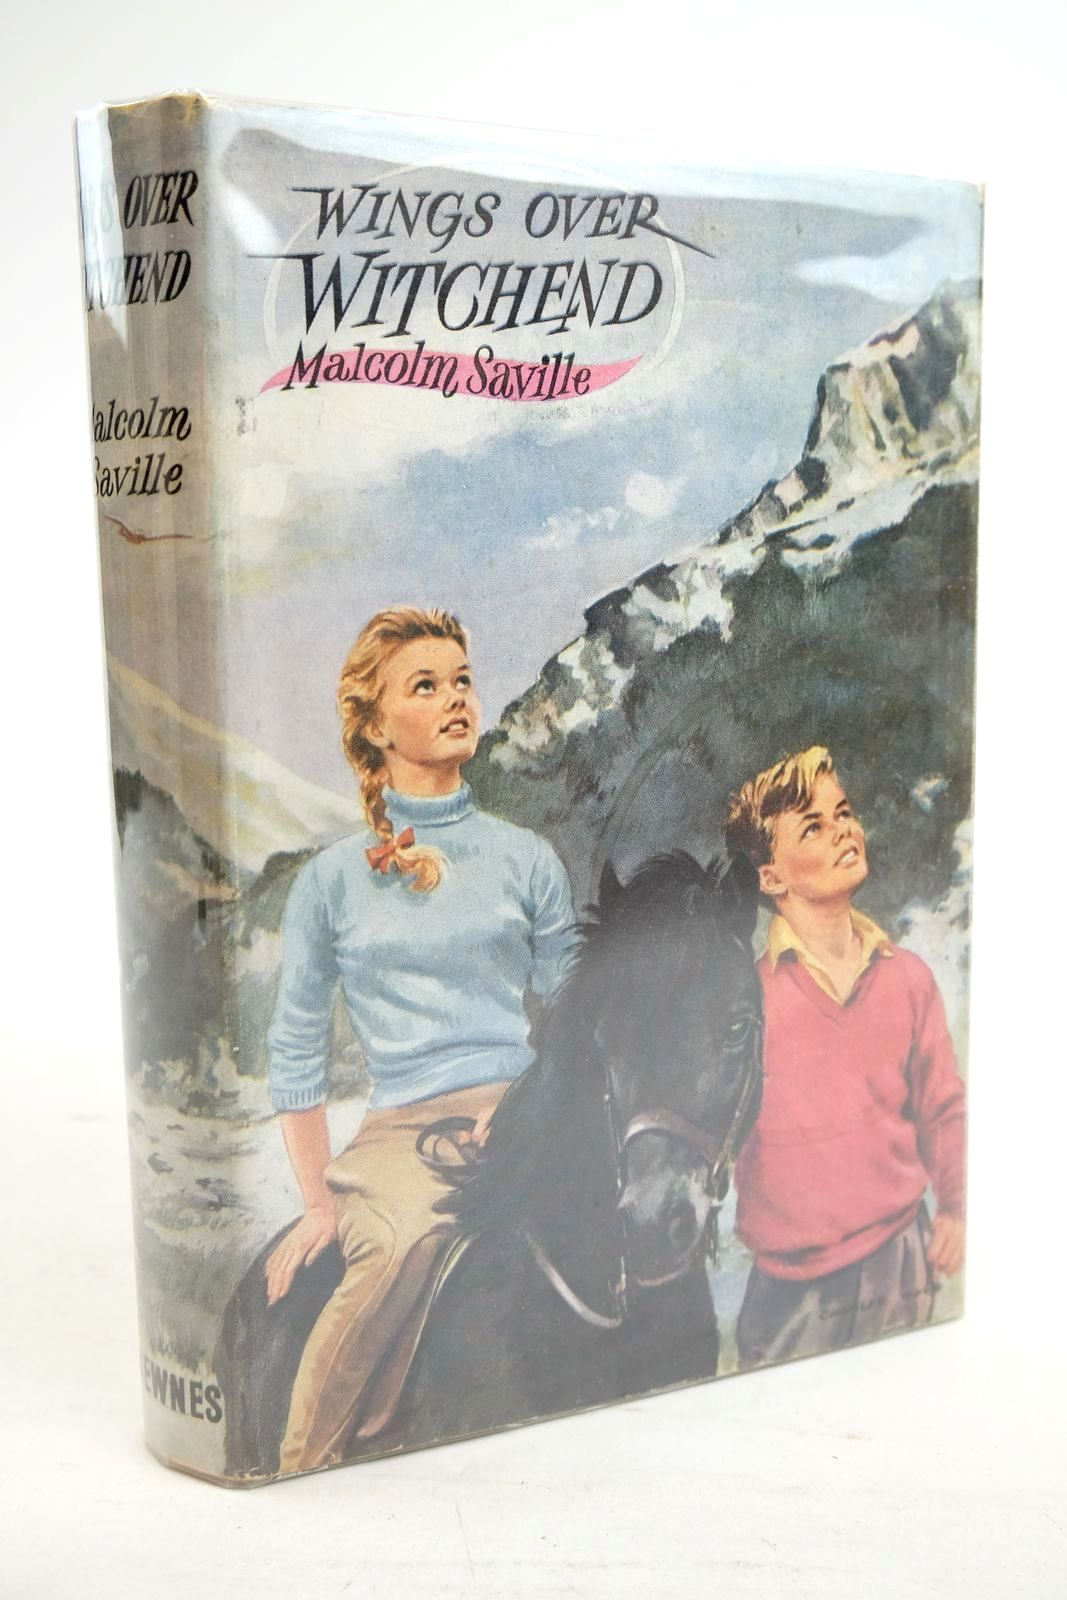 Photo of WINGS OVER WITCHEND written by Saville, Malcolm published by George Newnes Ltd. (STOCK CODE: 1320068)  for sale by Stella & Rose's Books